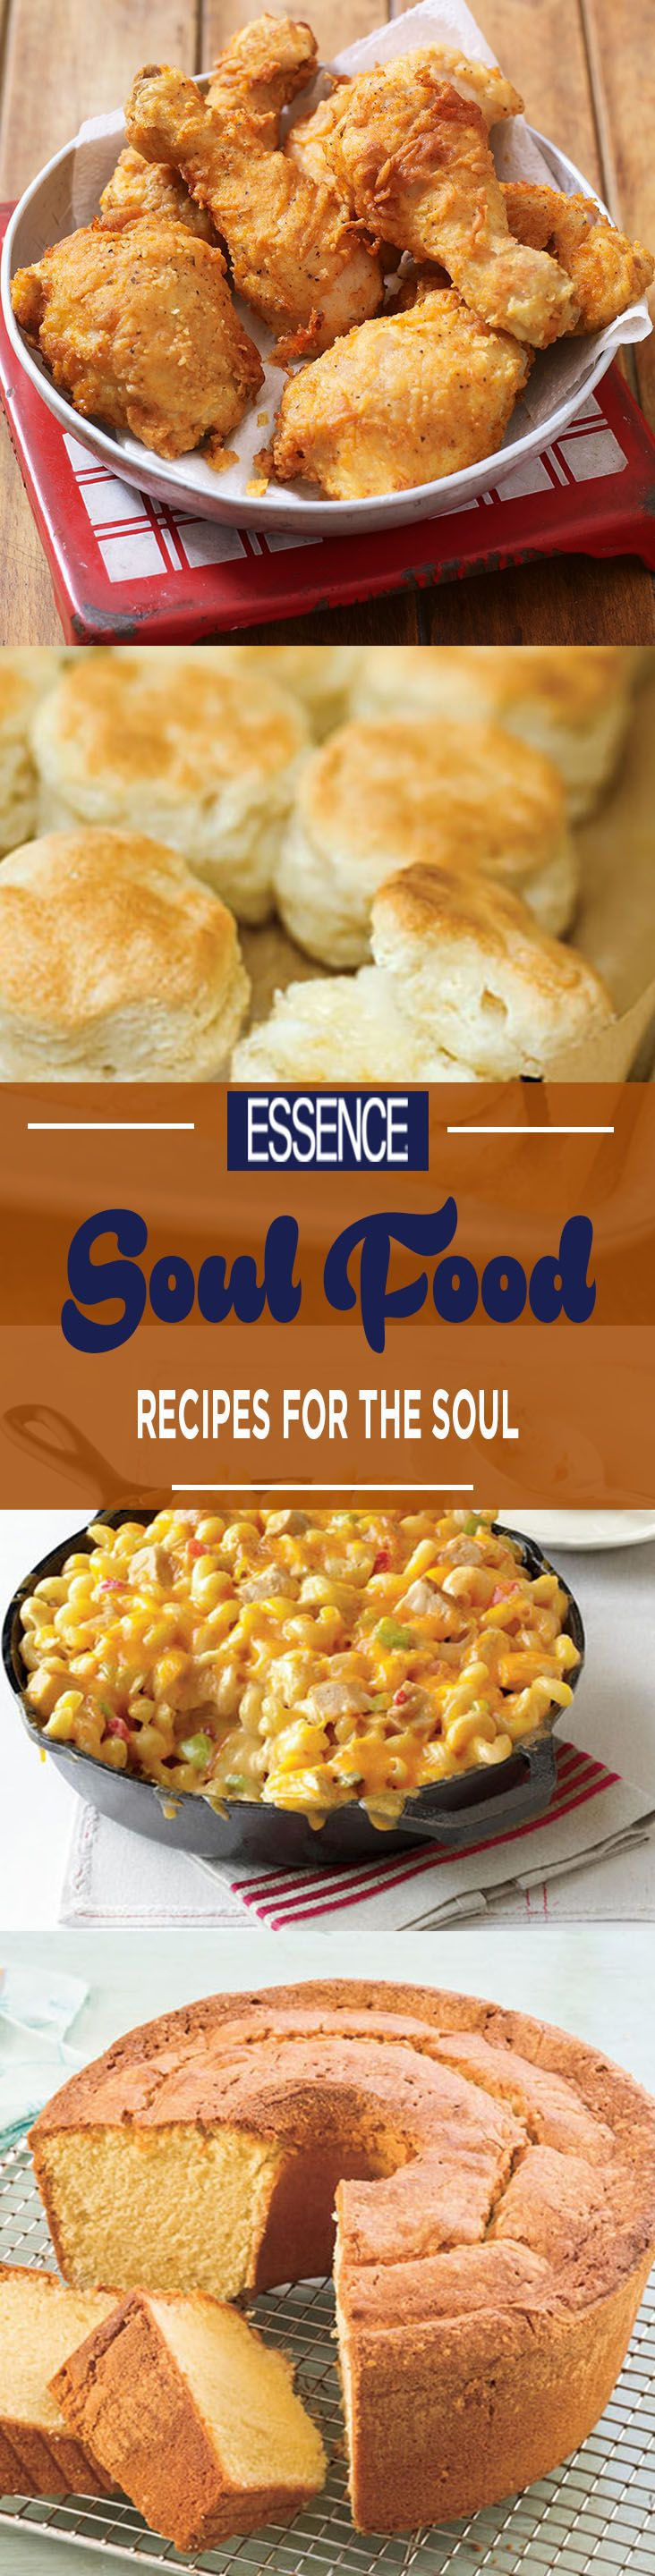 41 best soul food recipes images on pinterest cooking recipes 14 amazing soul food recipes to master forumfinder Choice Image